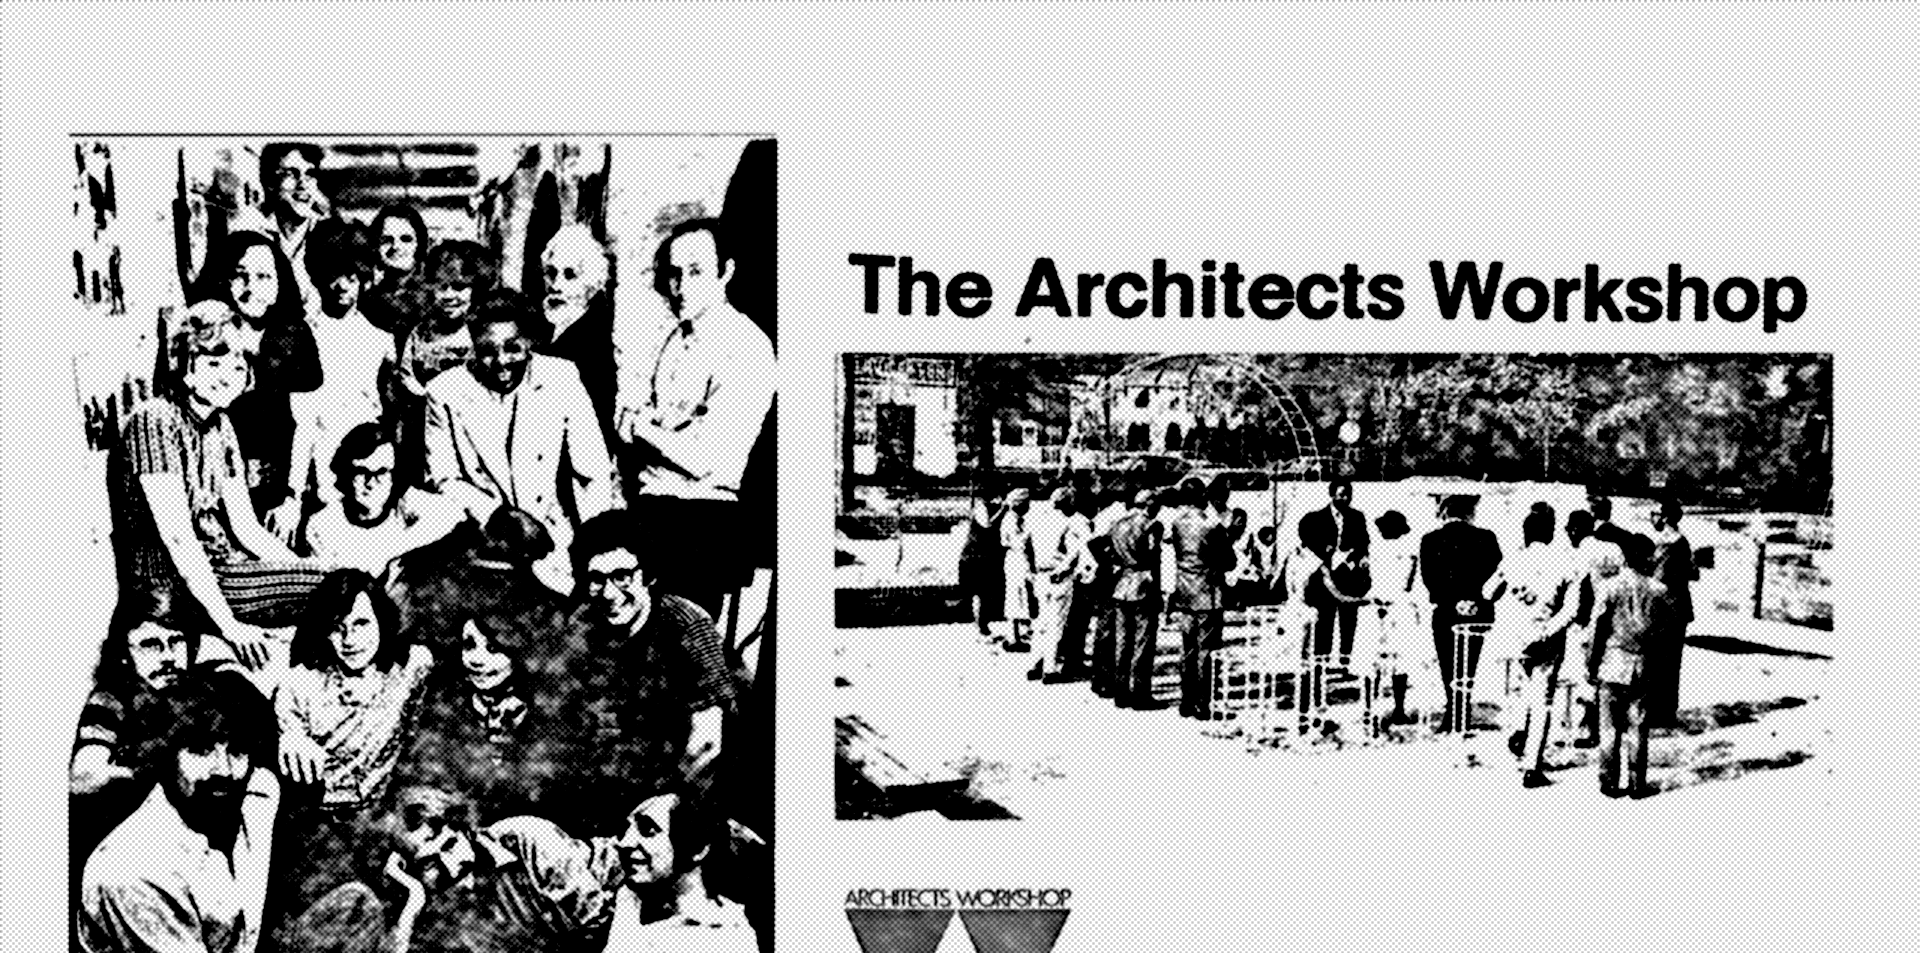 Outreach materials from the early 1970s (AIA Archives)